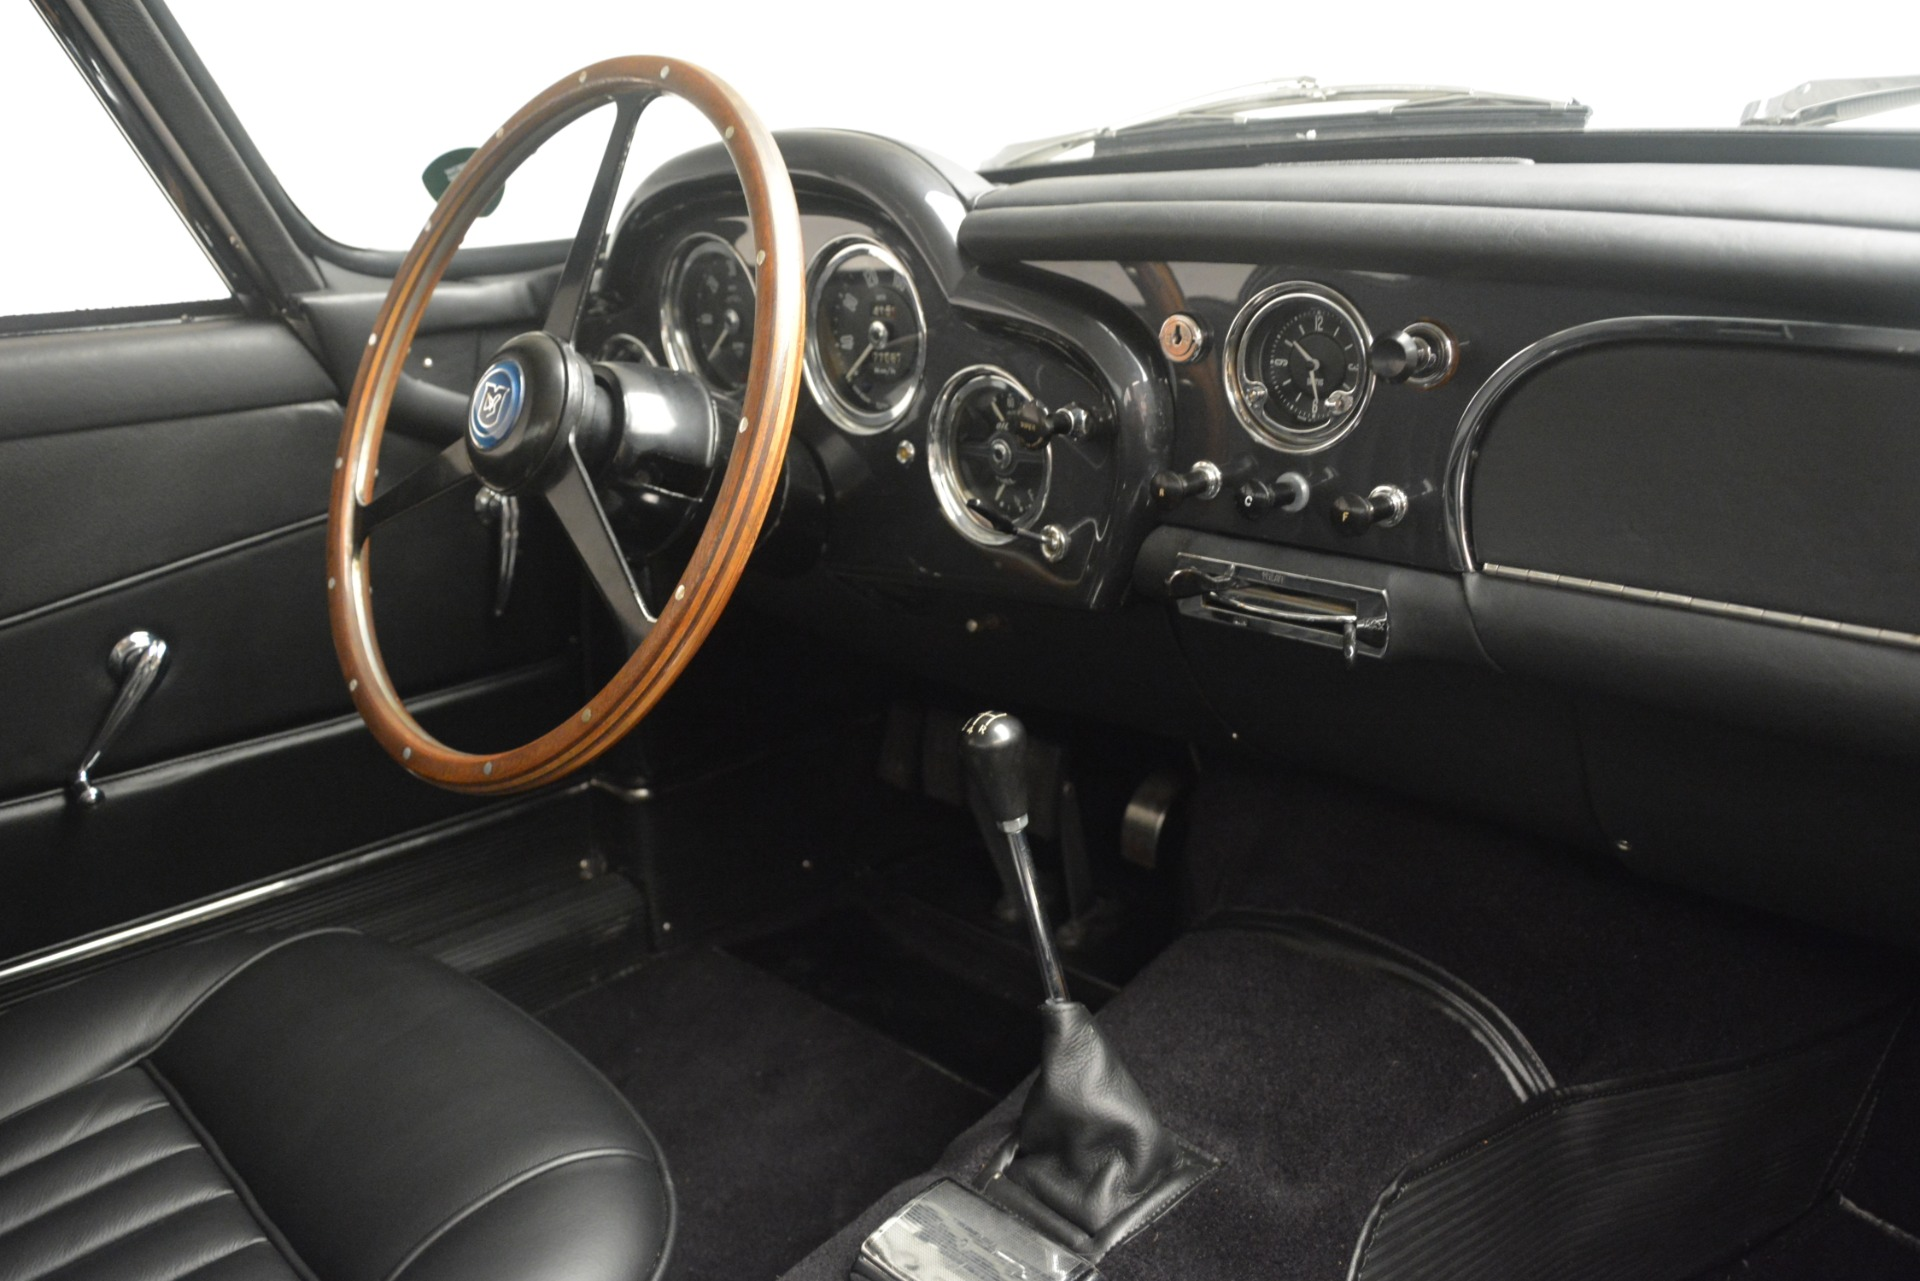 Used 1961 Aston Martin DB4 Series IV Coupe For Sale In Westport, CT 3186_p26